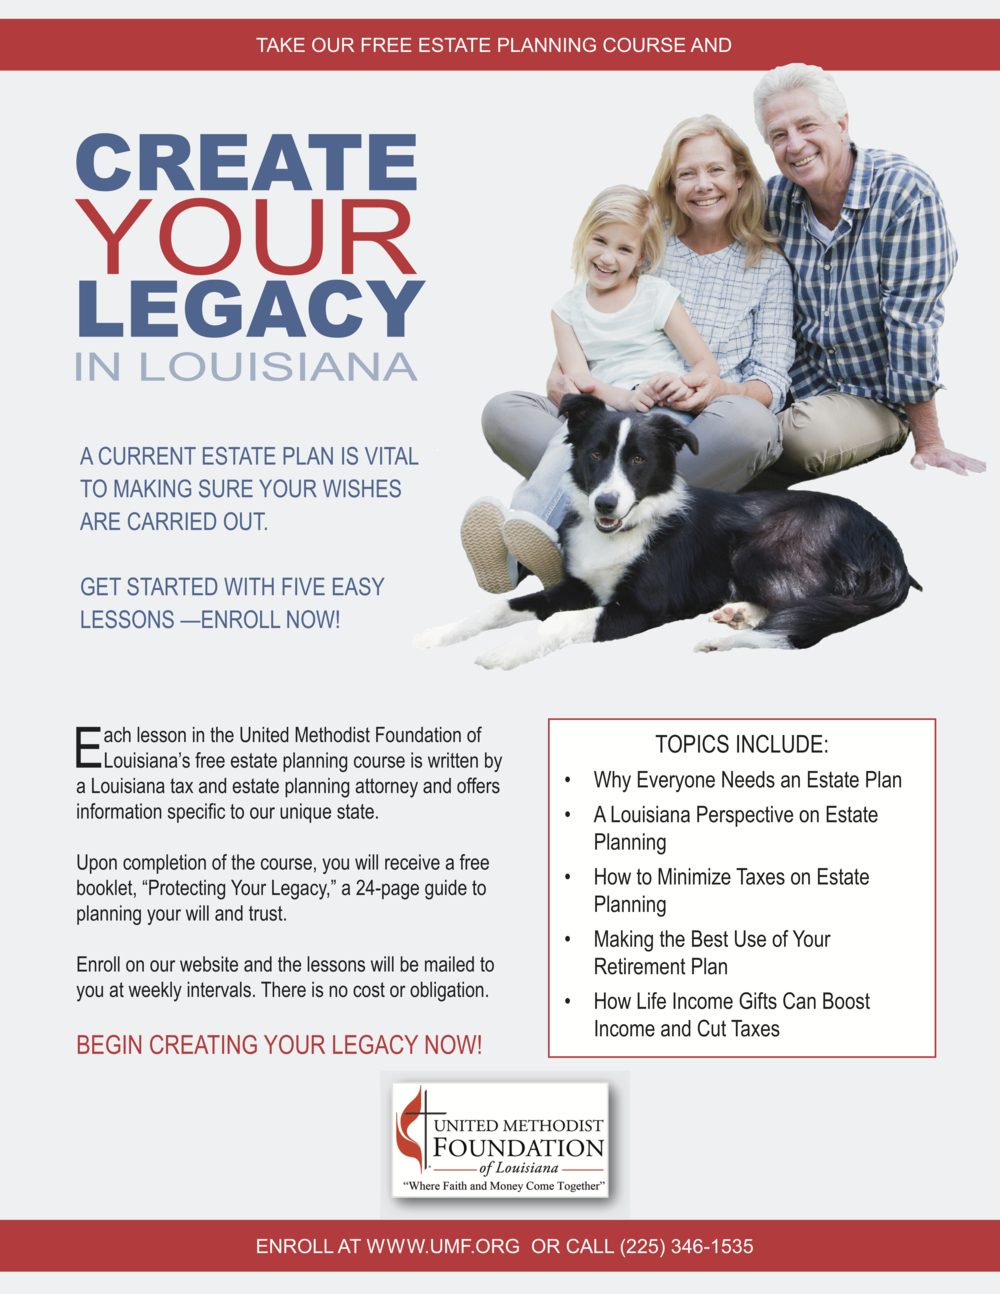 Our FREE Estate Planning Course is a five-week seminar-by-mail. Each week you will receive a 4-page lesson on the whys and hows of estate planning, with leaving a legacy in mind. There is no cost or obligation.